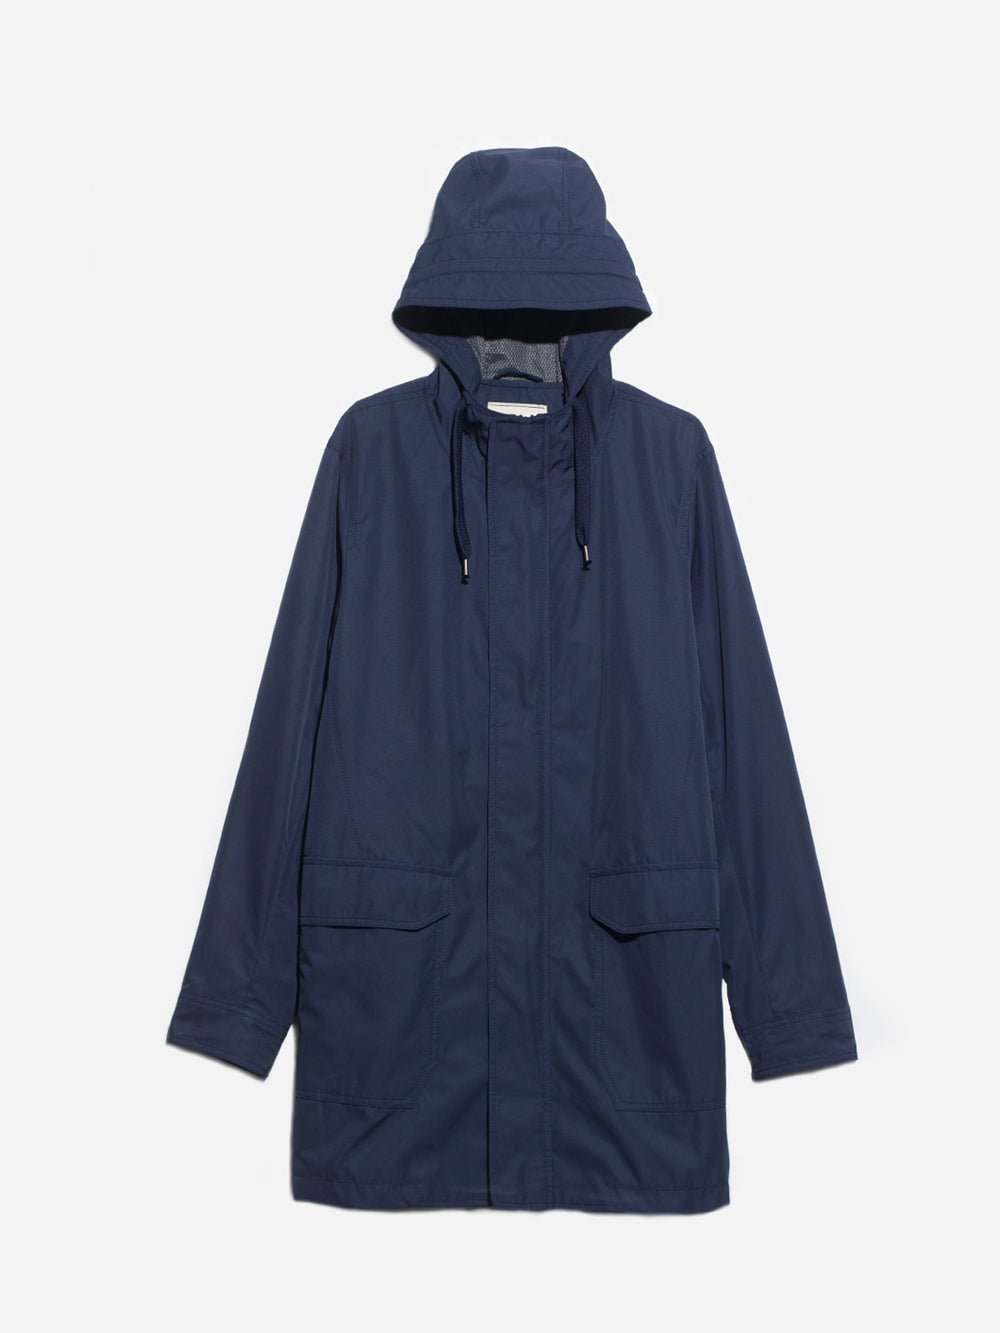 NAVY HOODED PARKER